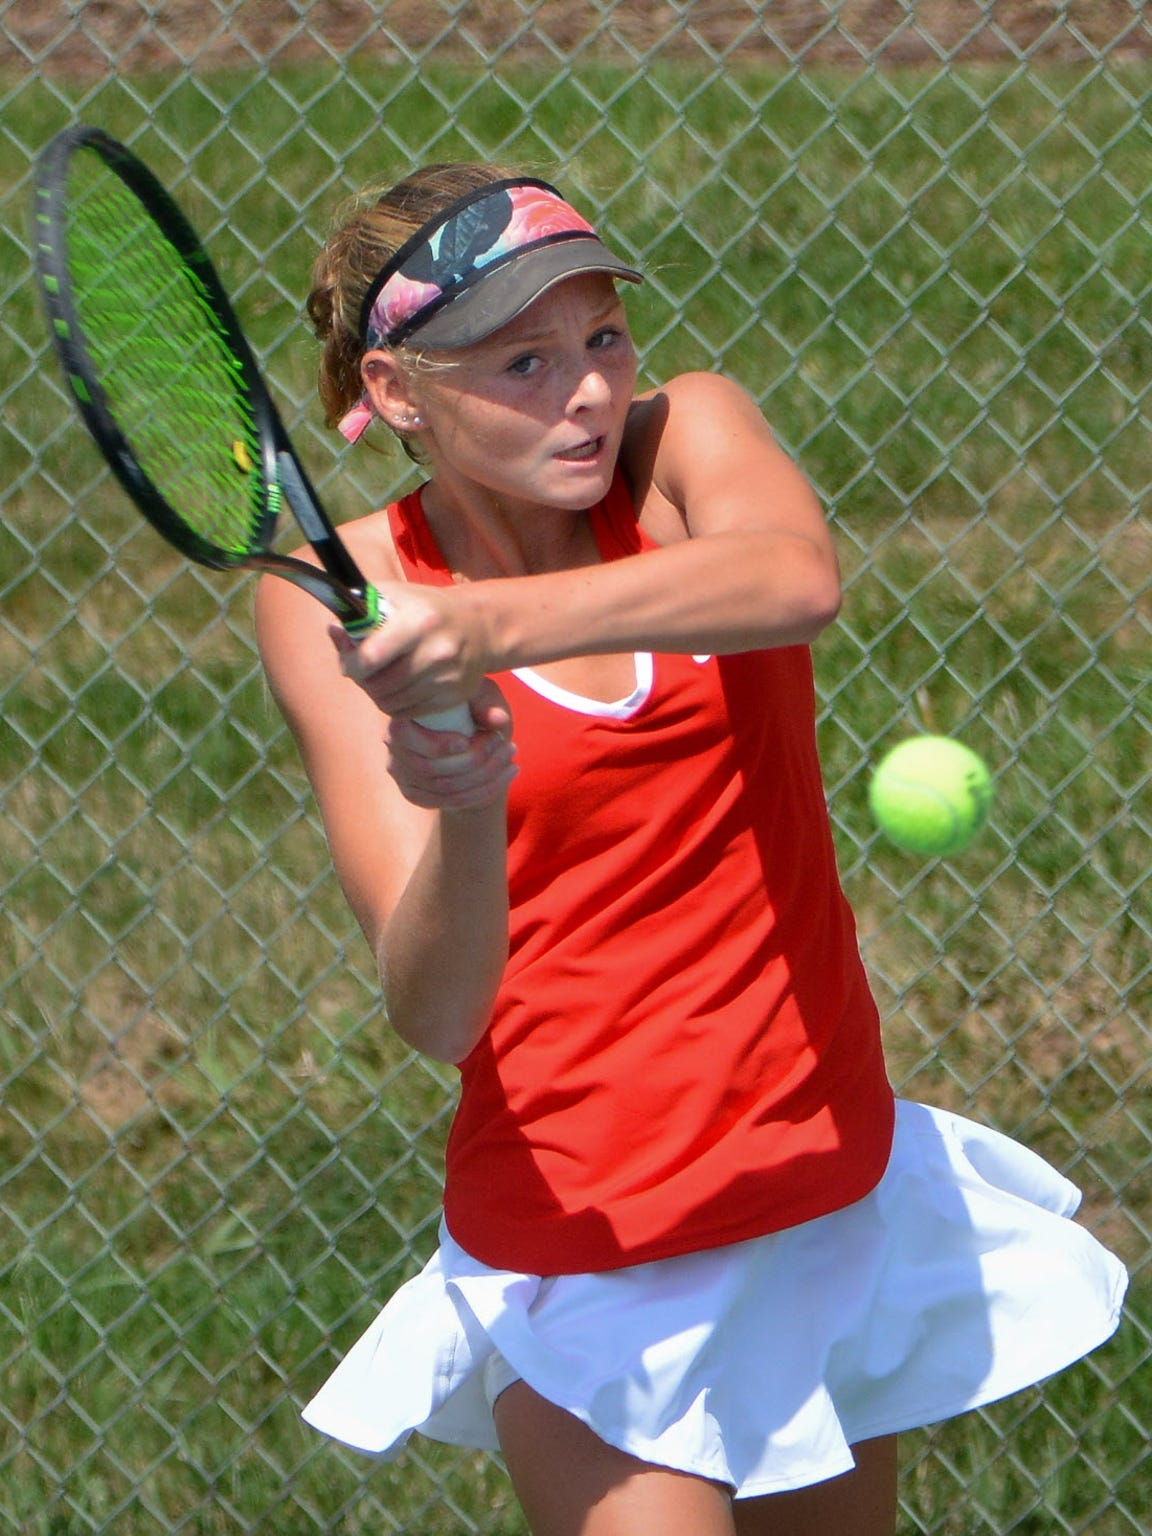 Andie Weise helped Homestead capture the girls team tennis title. She finished as the state runnerup in the individual singles tournament a week earlier.